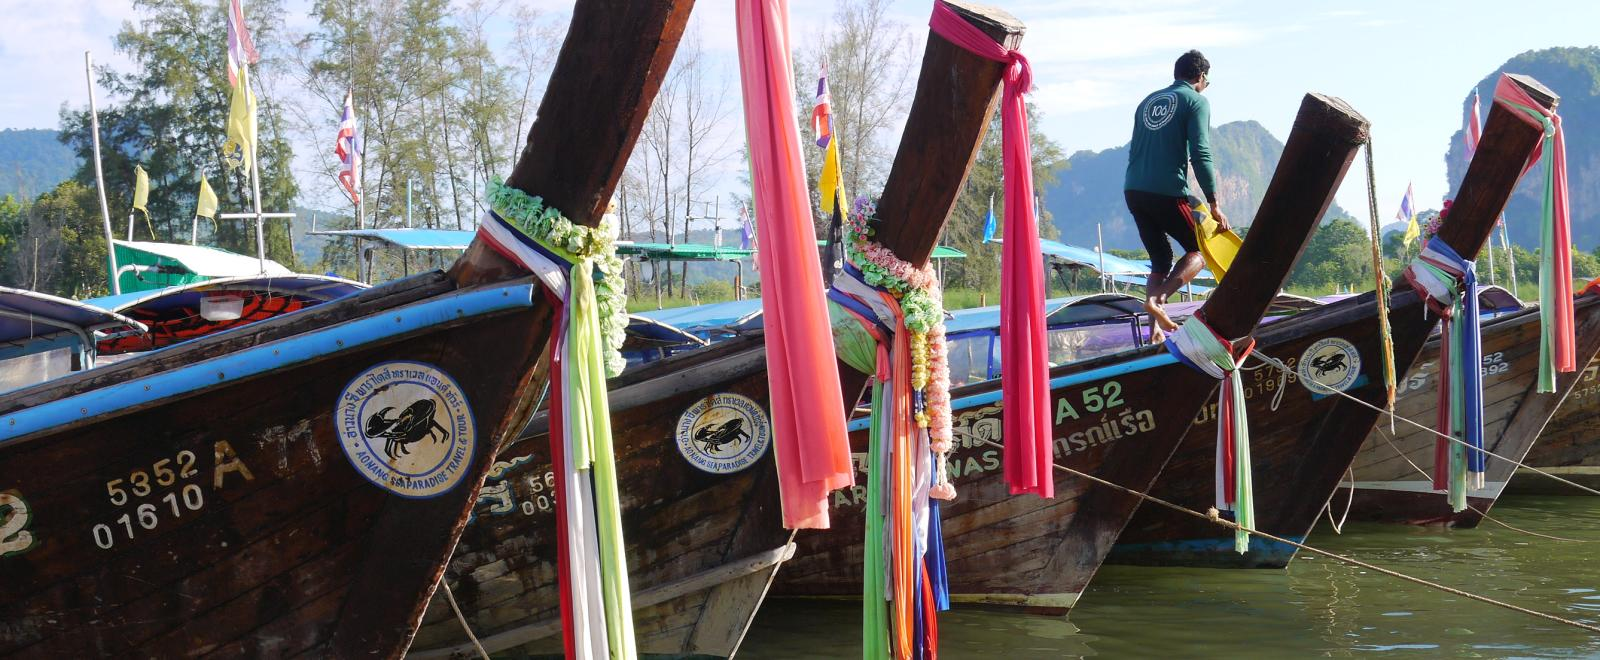 Boats are lined up in Thailand, where Projects Abroad hosts many worthwhile Projects